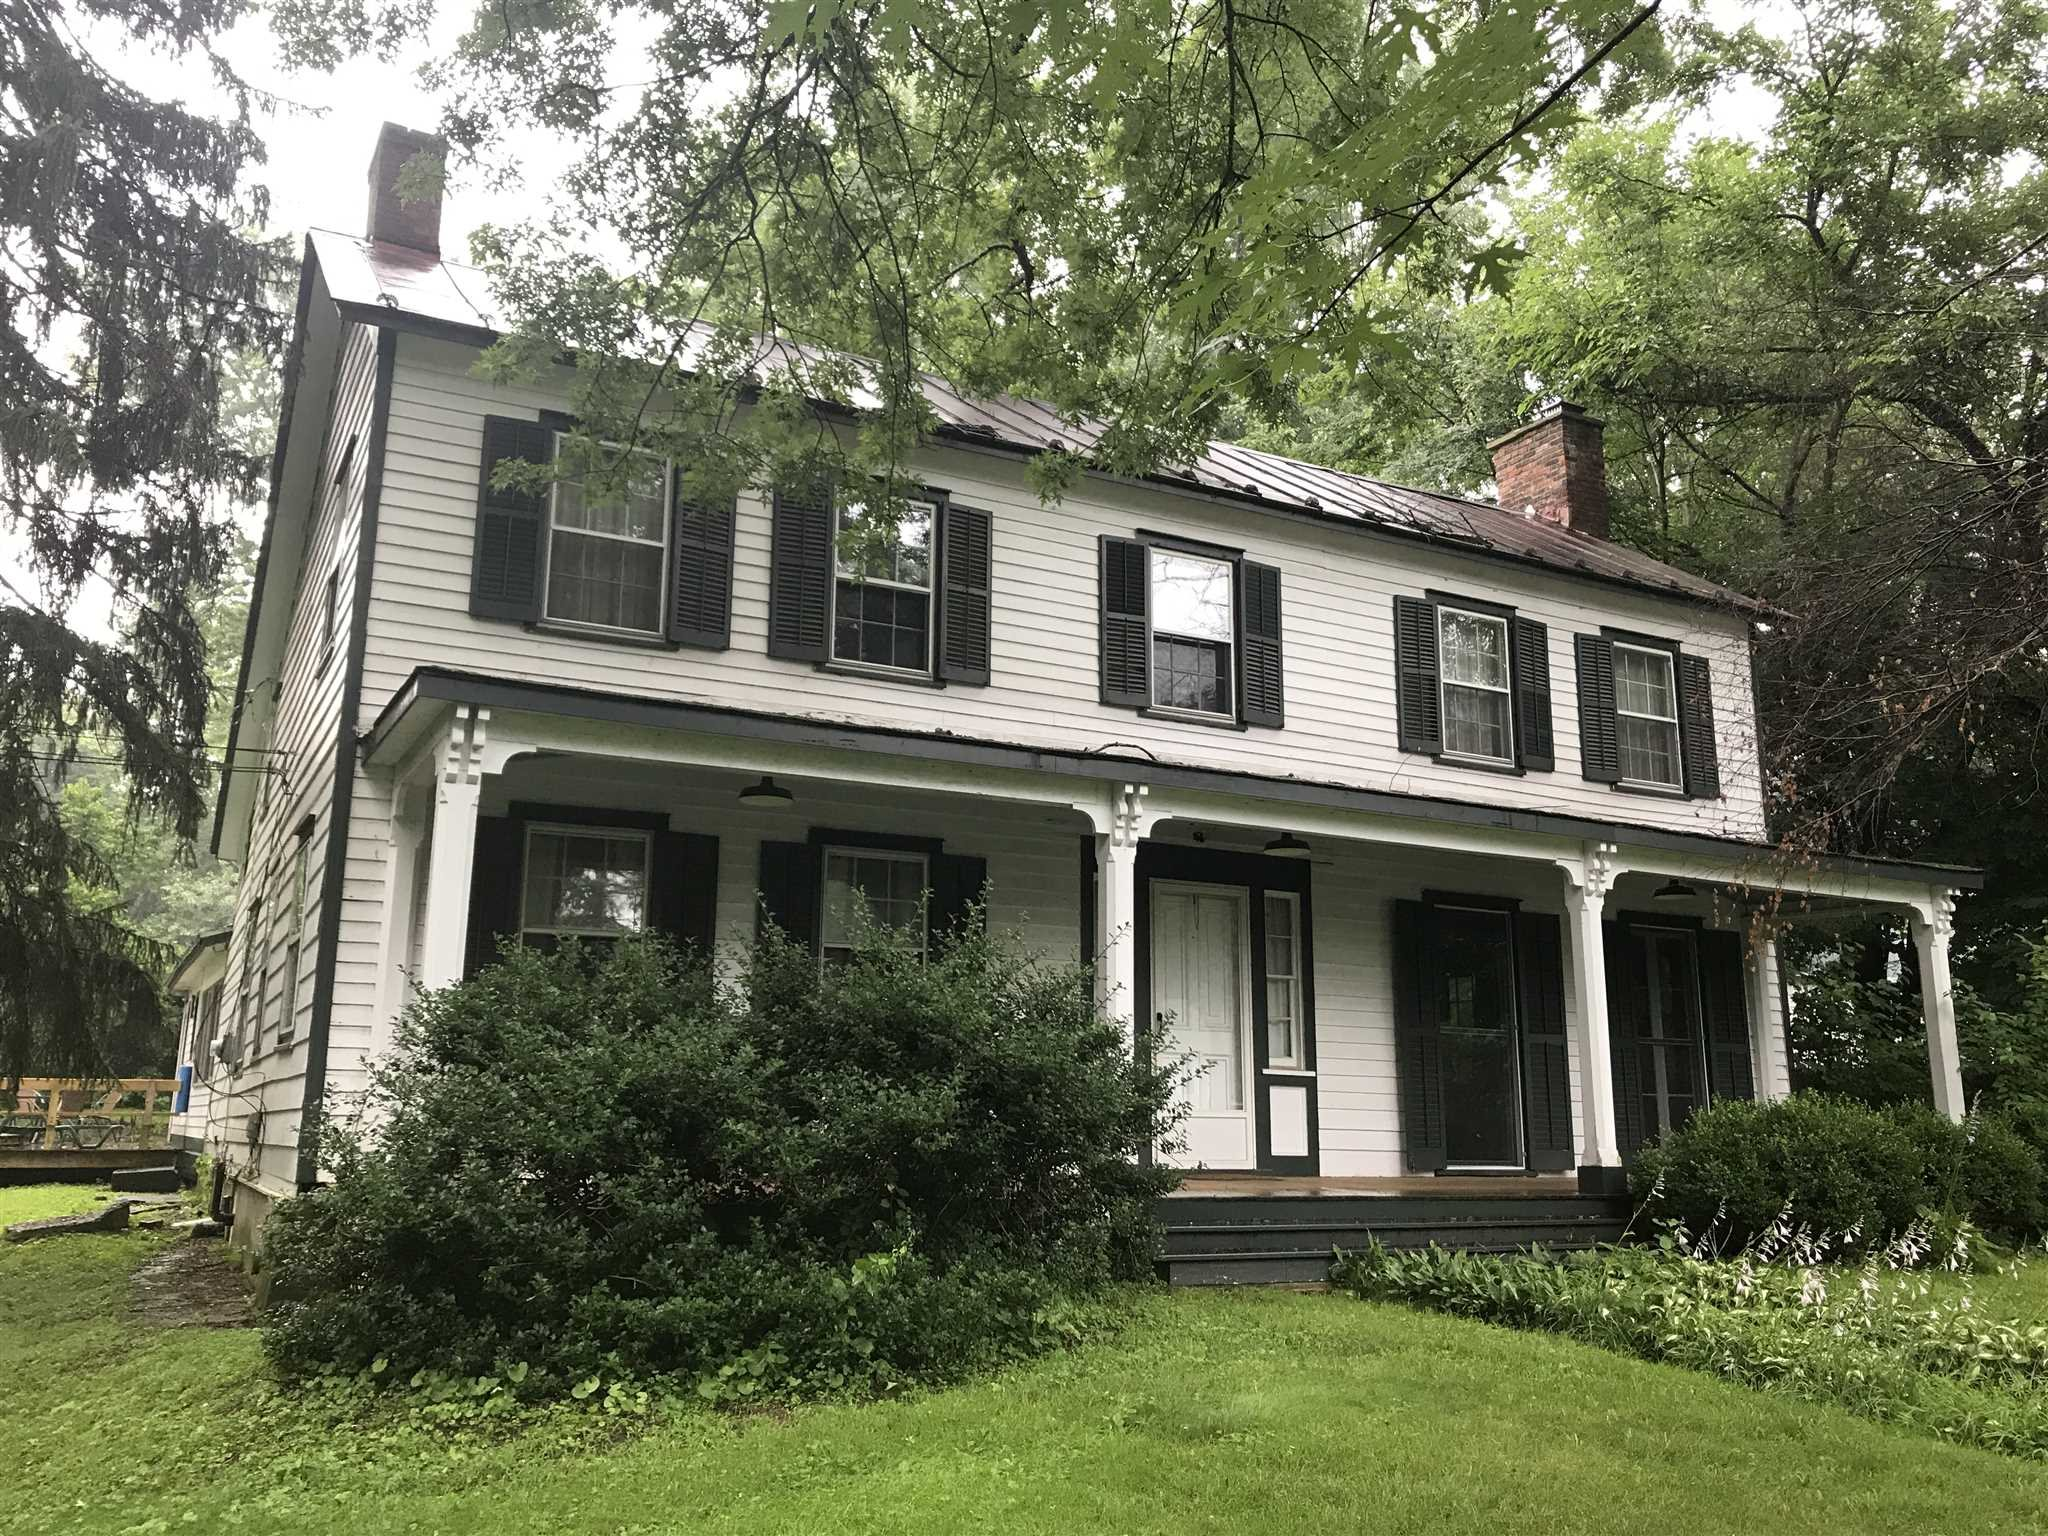 Single Family Home for Sale at 102 OLD POST RD NORTH 102 OLD POST RD NORTH Red Hook, New York 12571 United States